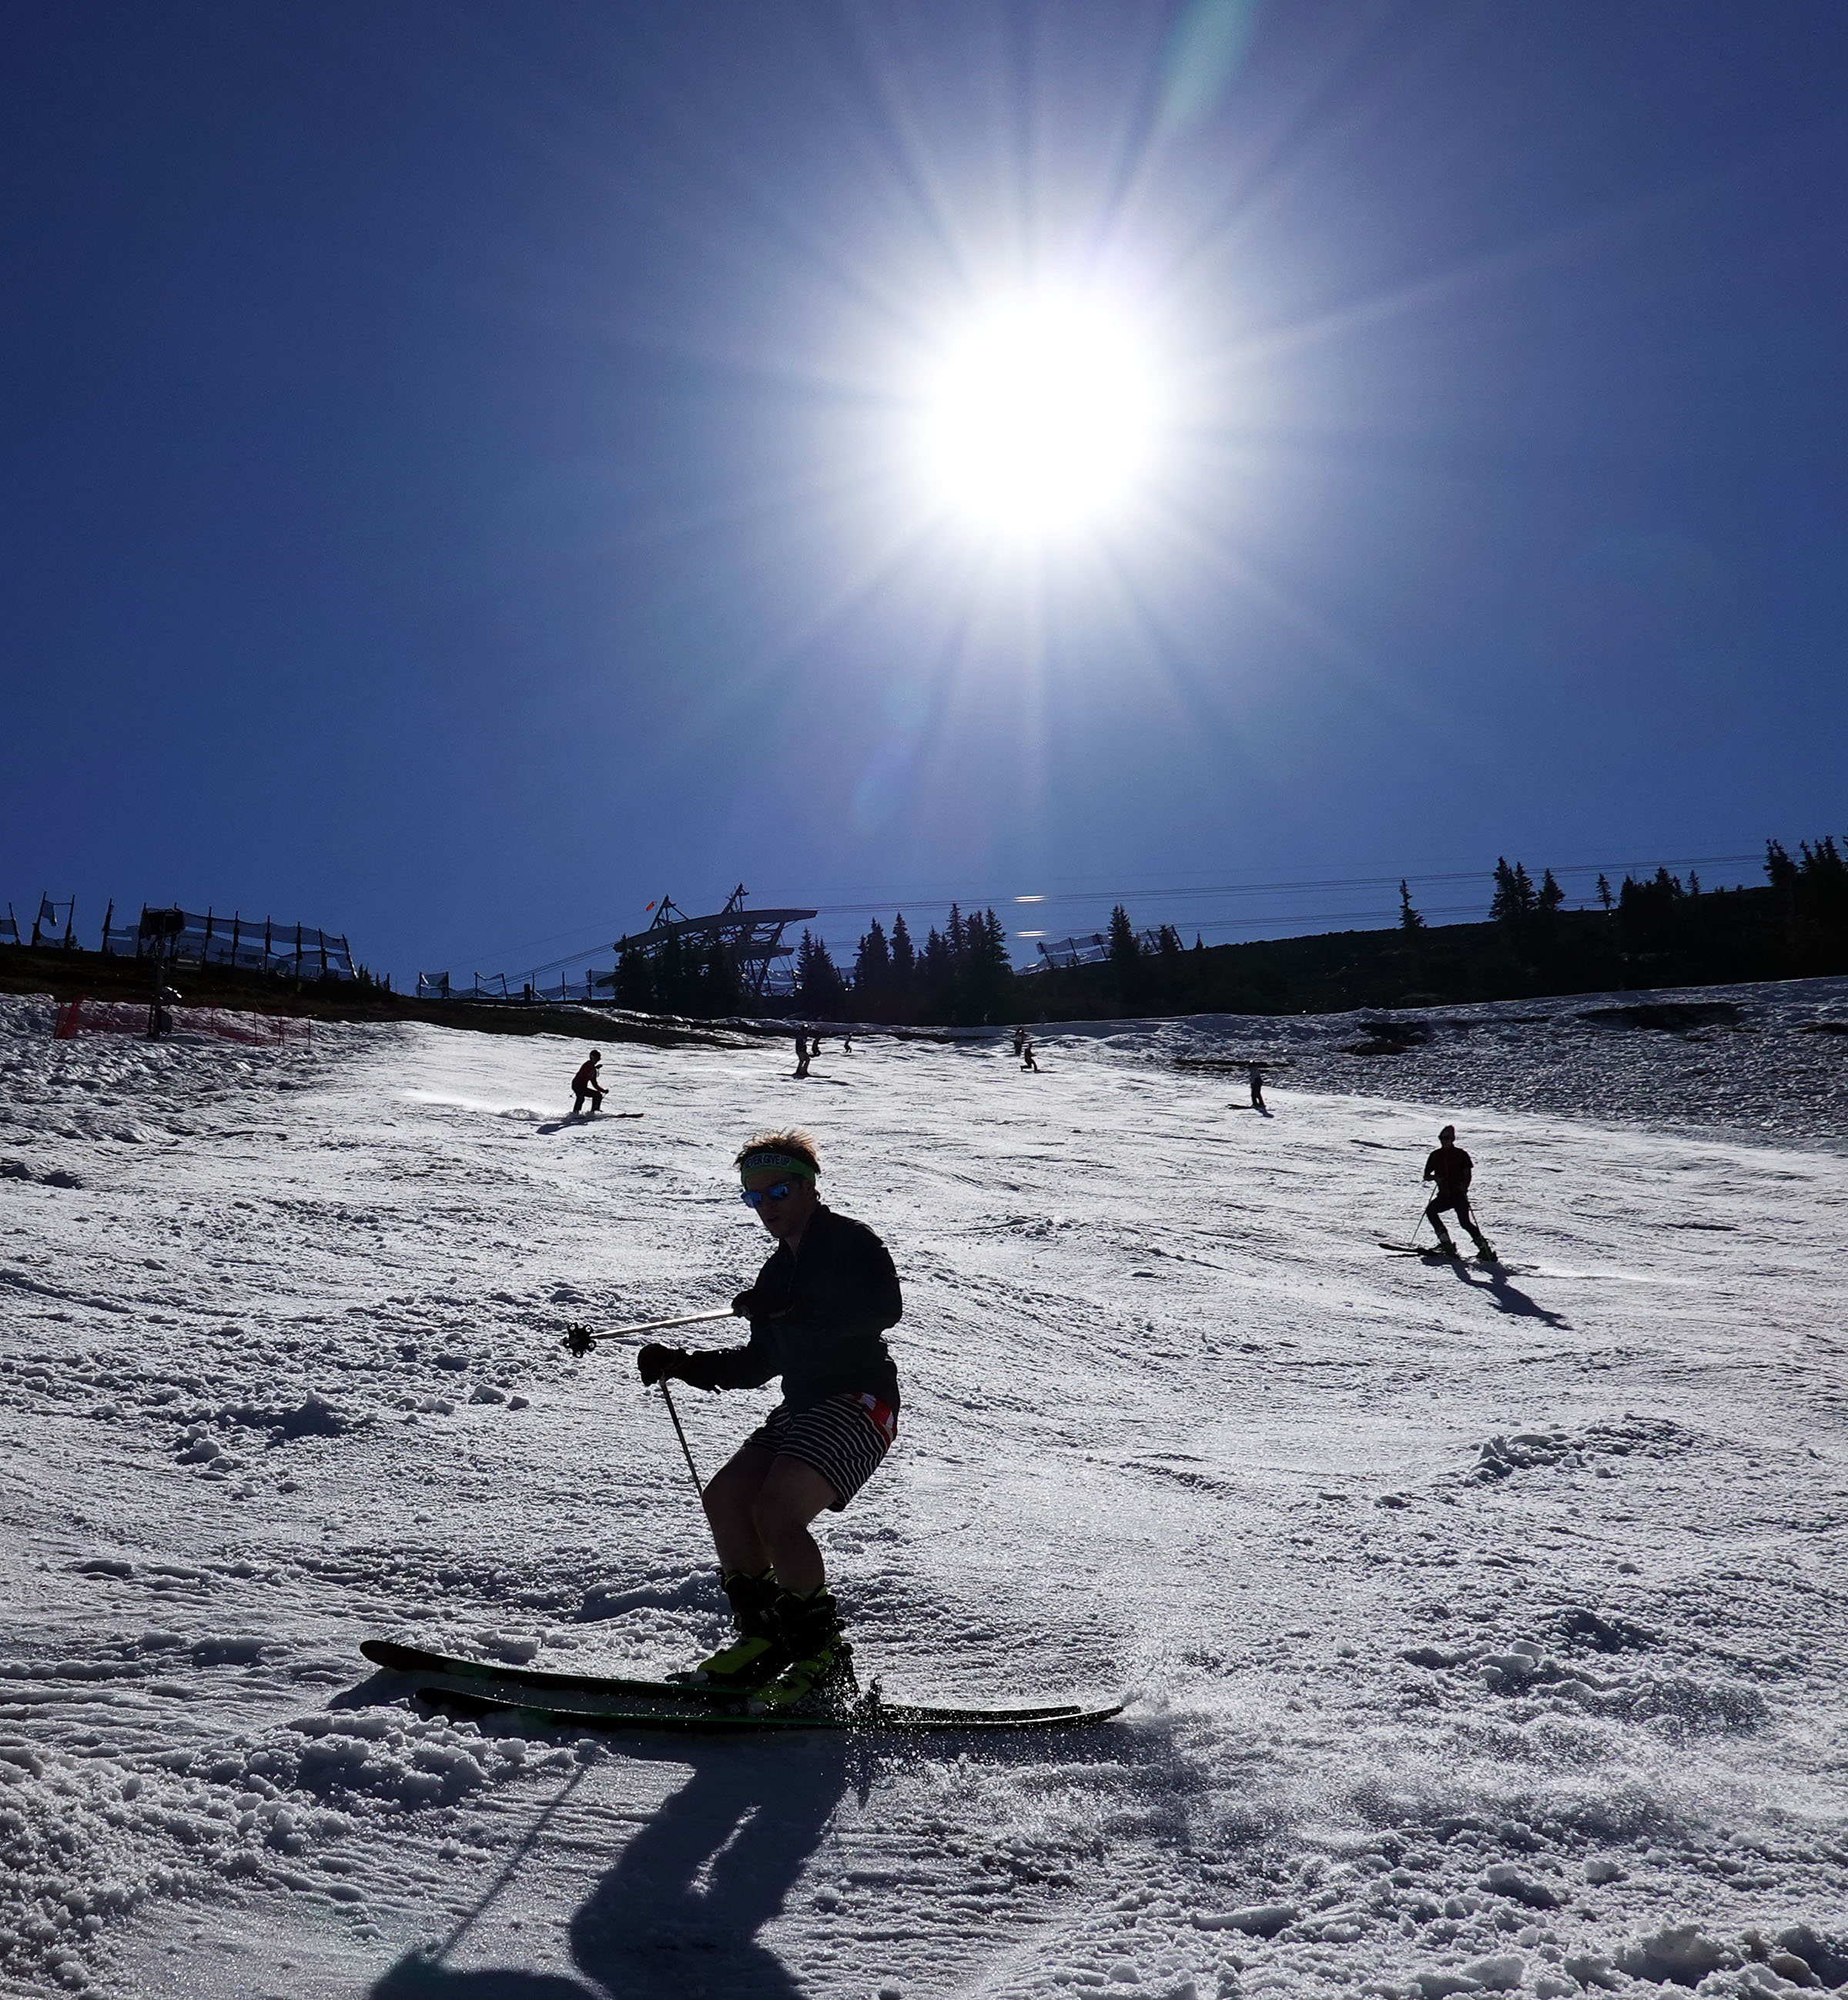 Skiers and snowboarders glide down the Regulator run at Snowbird on Thursday, July 4, 2019.